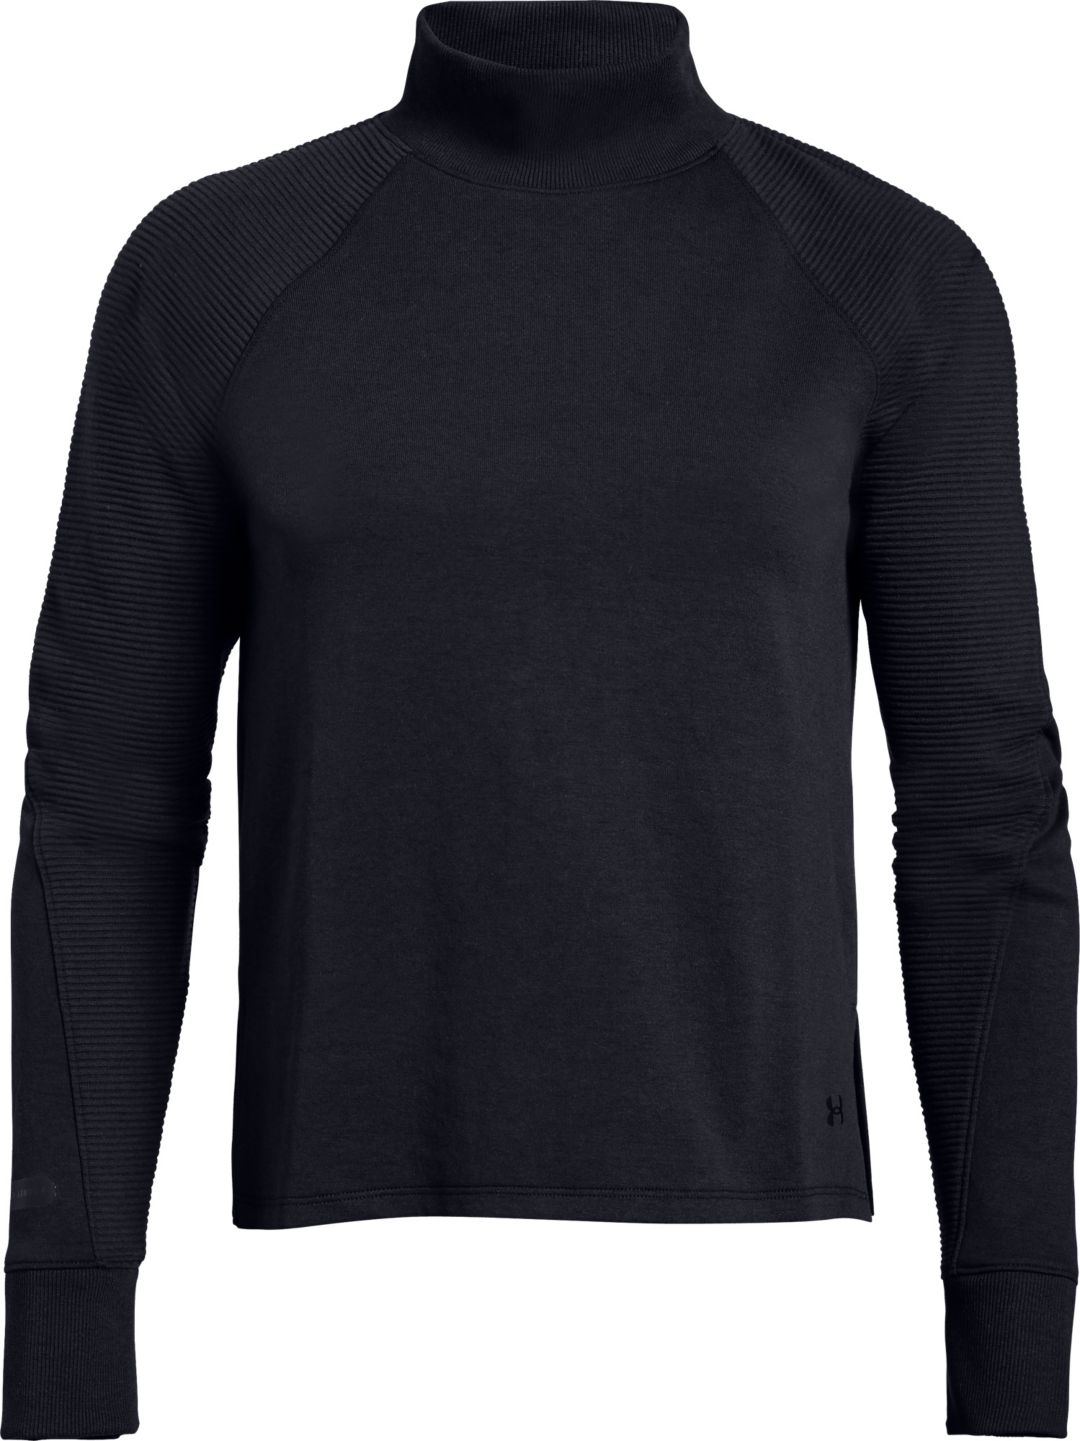 899f178a Under Armour Women's Unstoppable Double Knit Mock Neck Long Sleeve Shirt